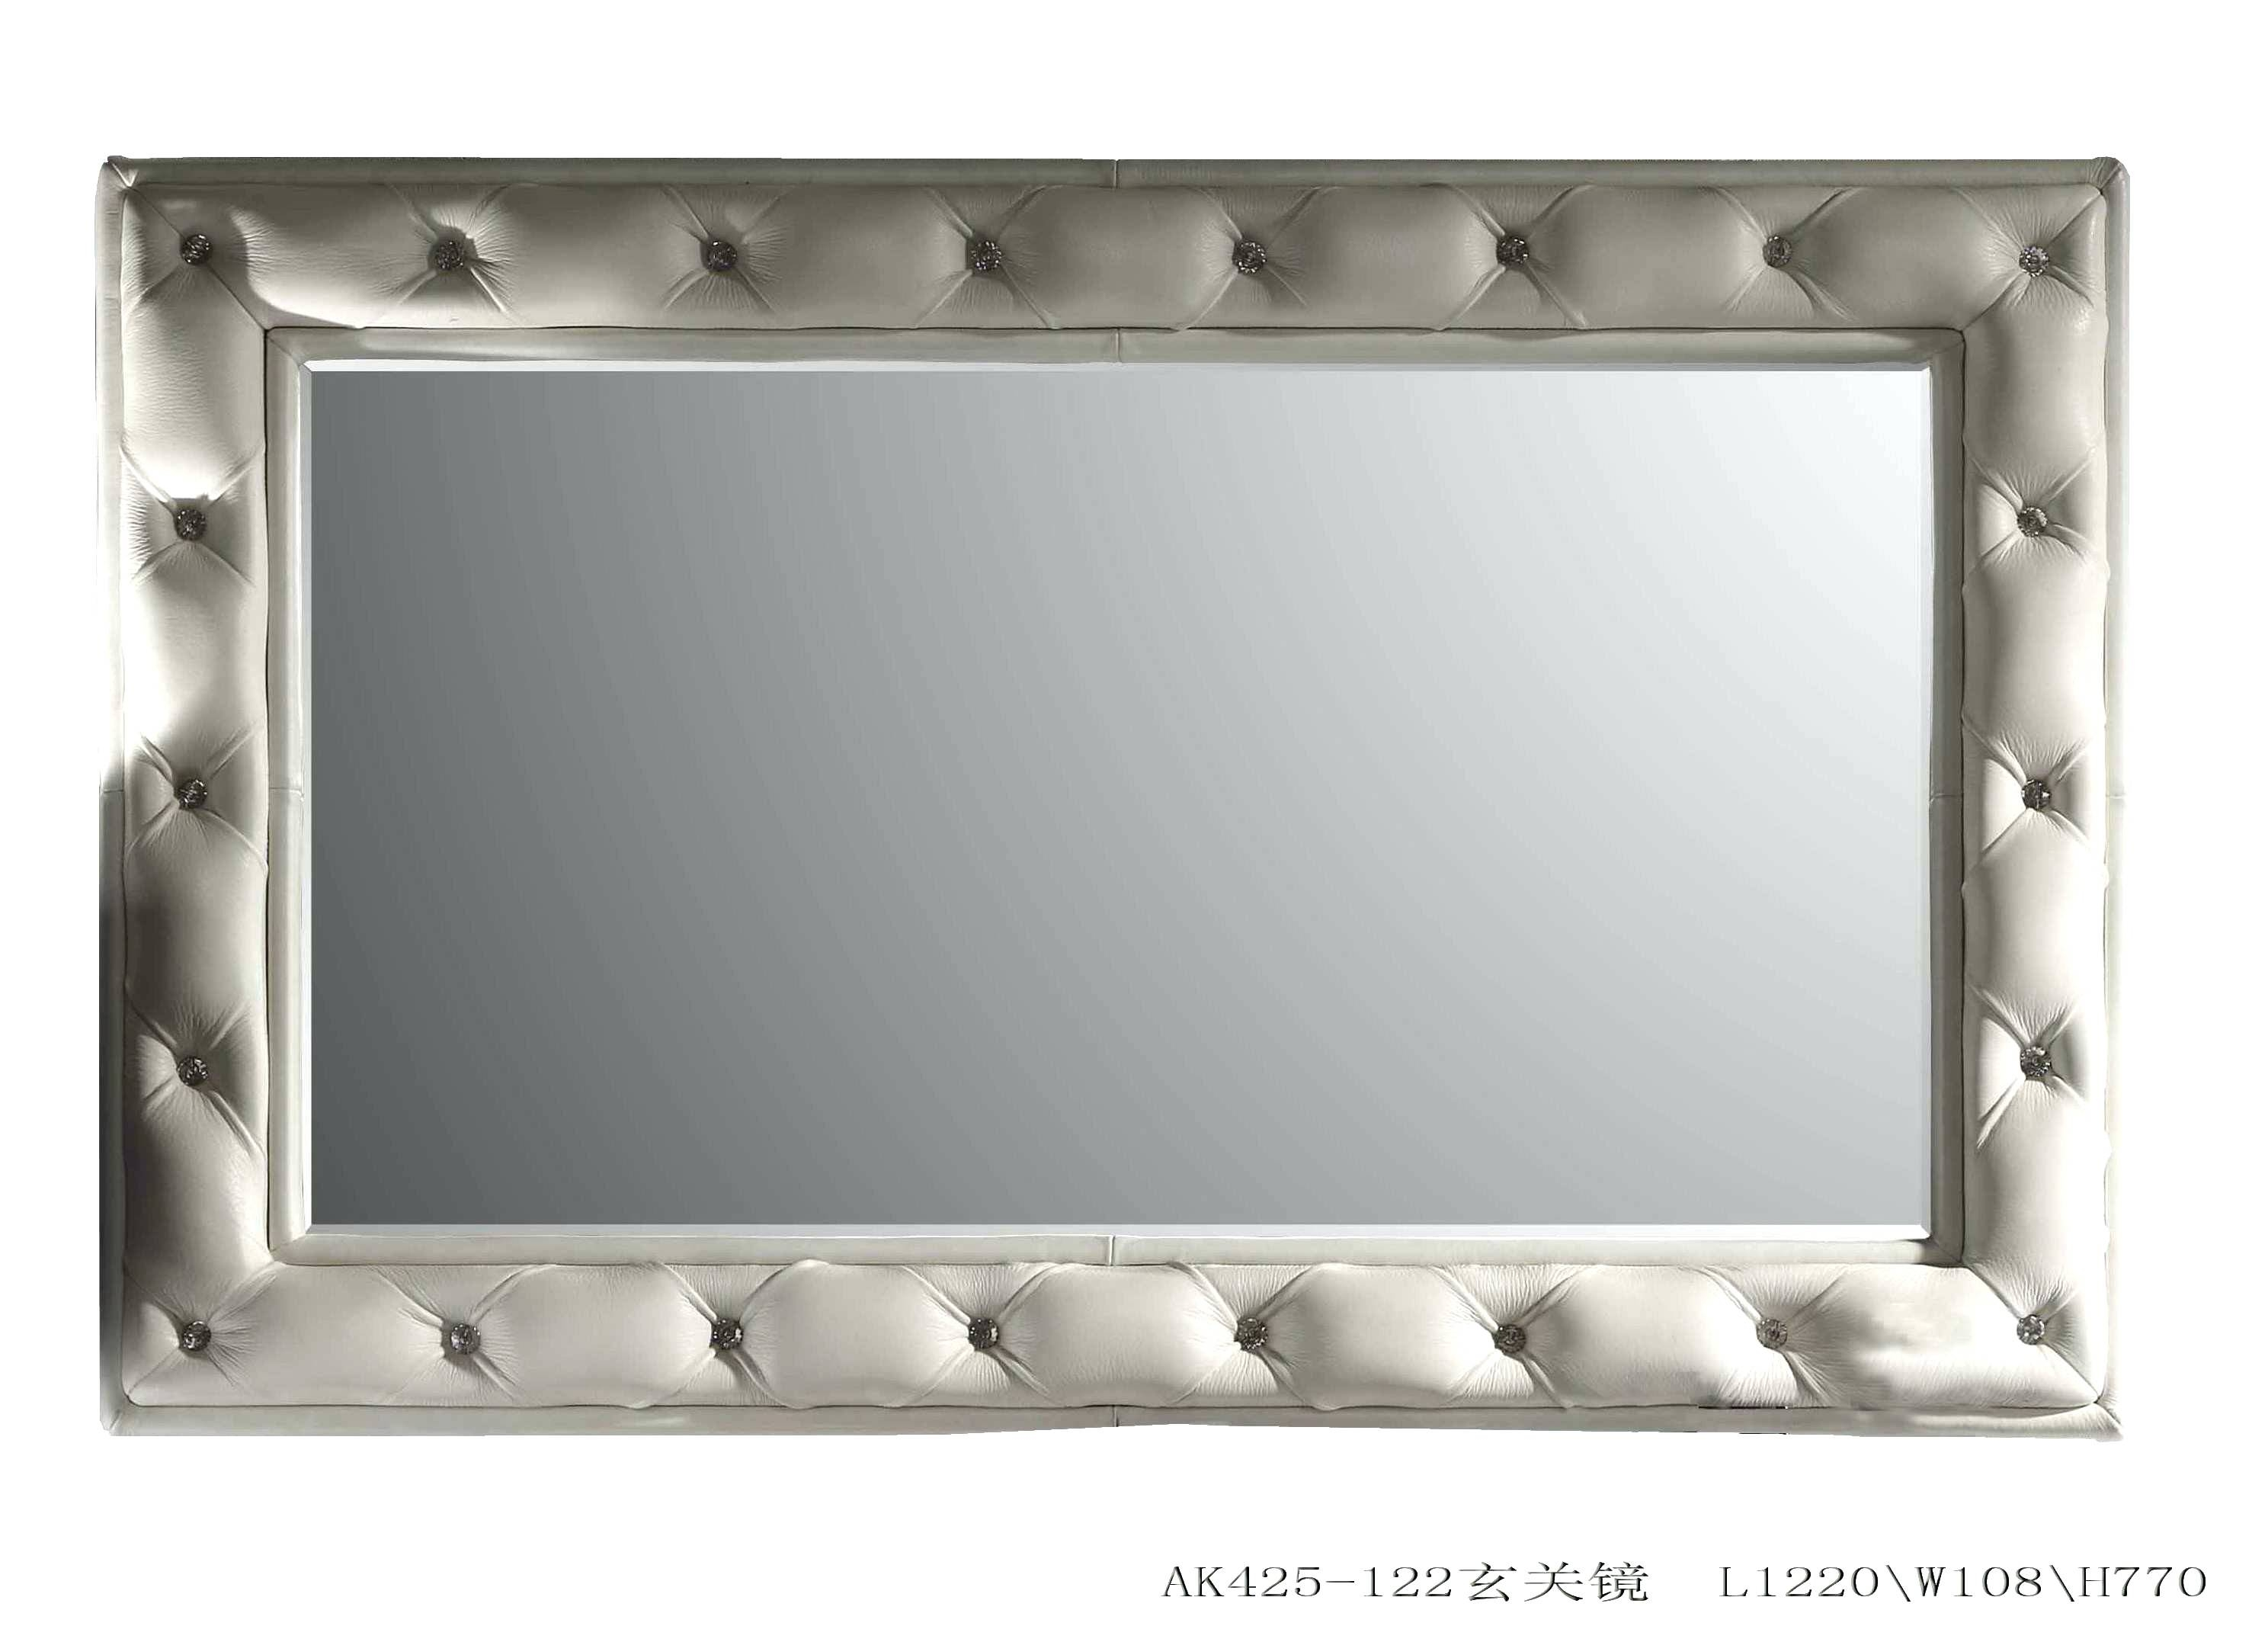 Wall Mirrors ~ Leather Wall Mirror Sale Leather Framed Mirrors Uk Inside Black Leather Framed Mirrors (View 14 of 15)